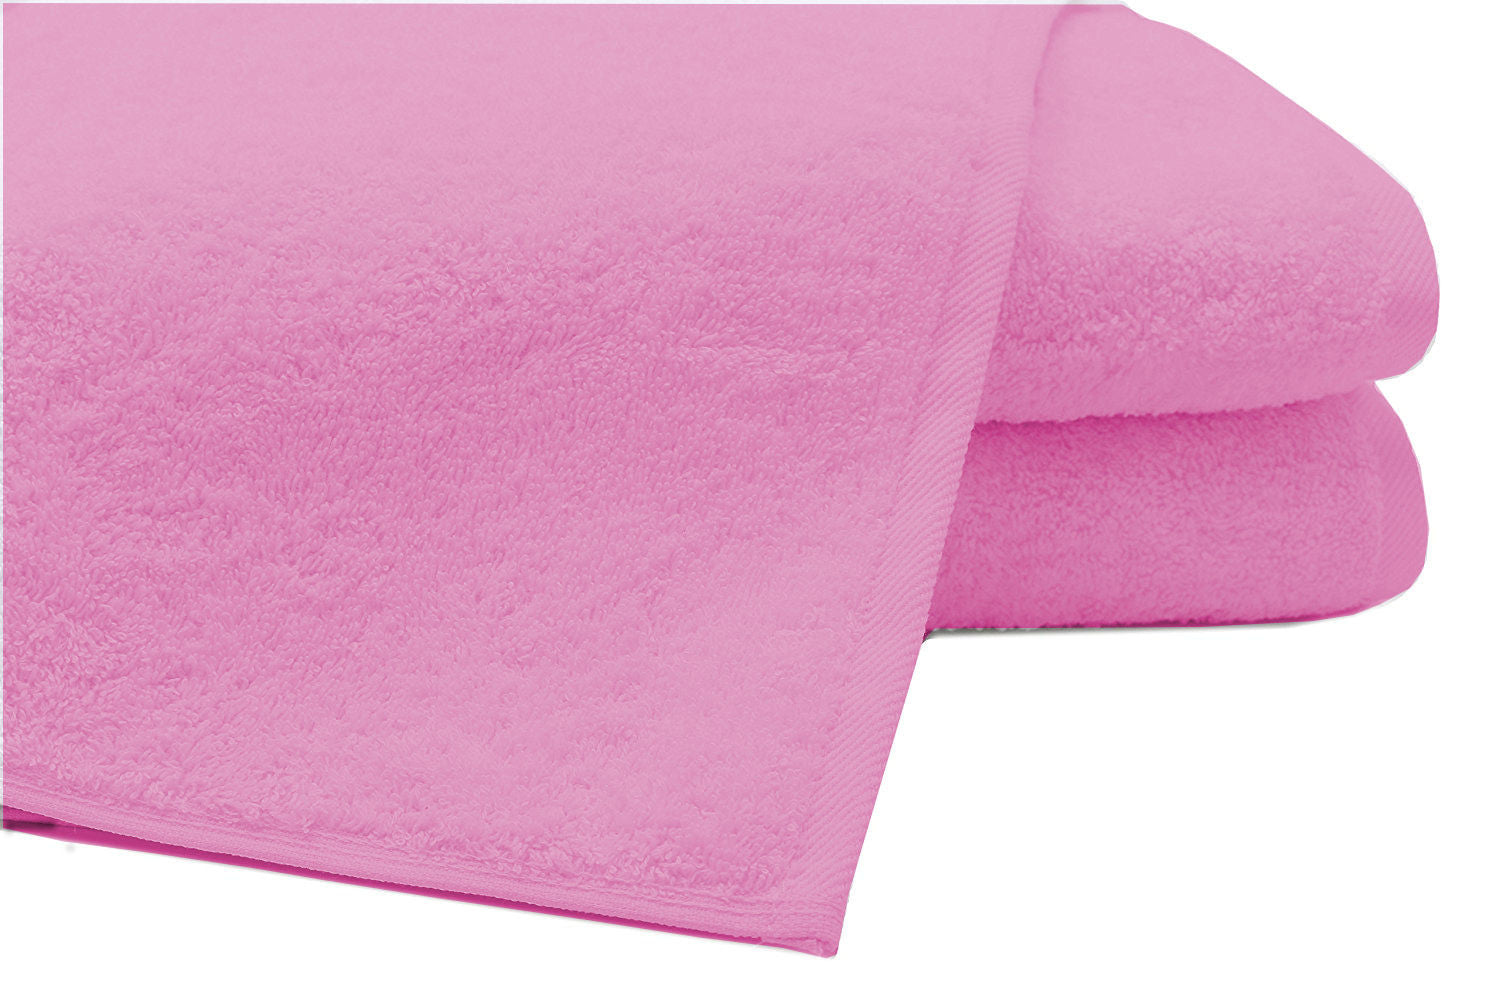 Pack of 2 Extra Large Bath Sheets100% Cotton Towels Jumbo Size COLOUR Pink